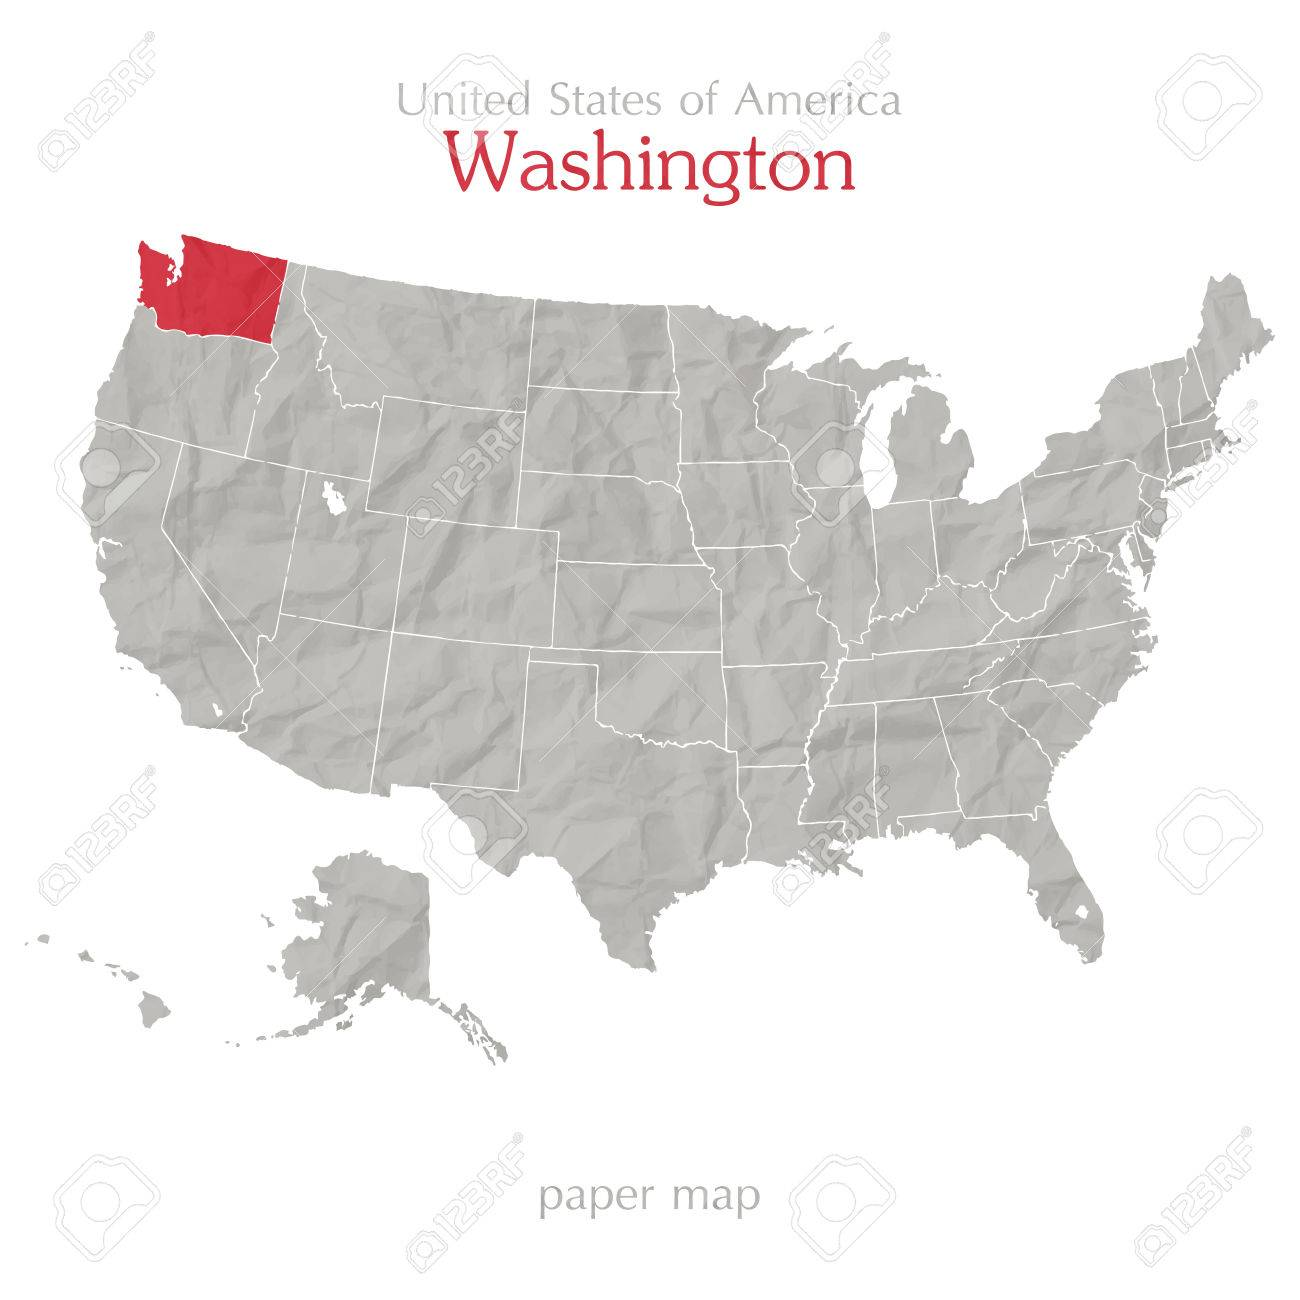 washington and united states of america maps outline stock vector 28257265